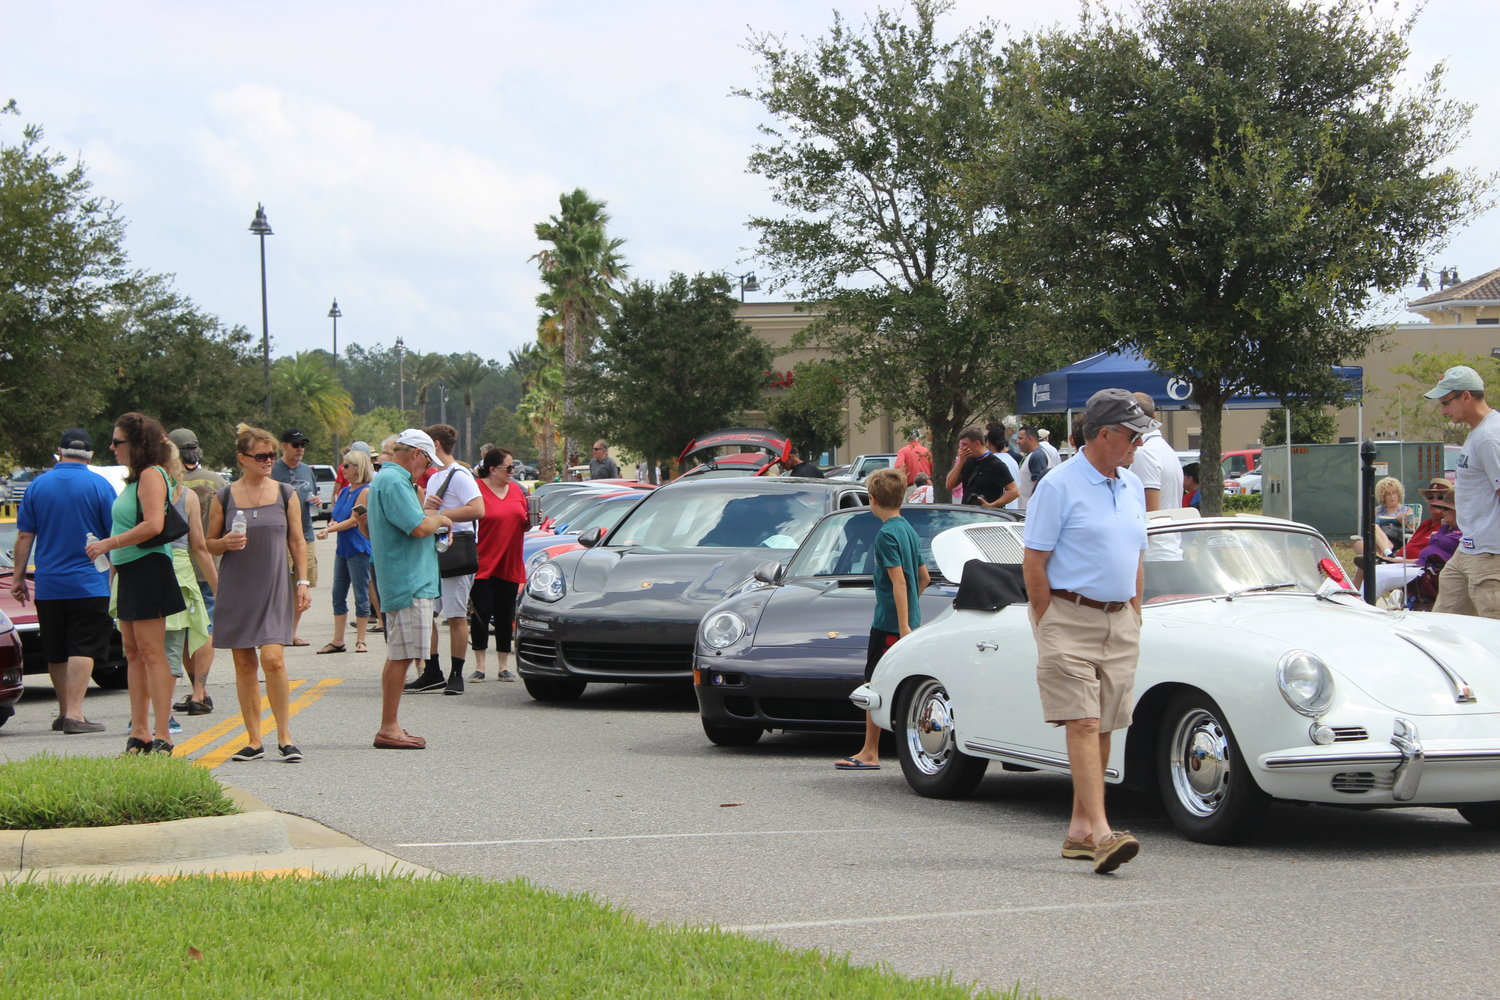 The Ponte Vedra Auto Show presented by Fields Auto Group is scheduled for Sunday, Sept. 15 at the Nocatee Event Field with free admission and parking for spectators.